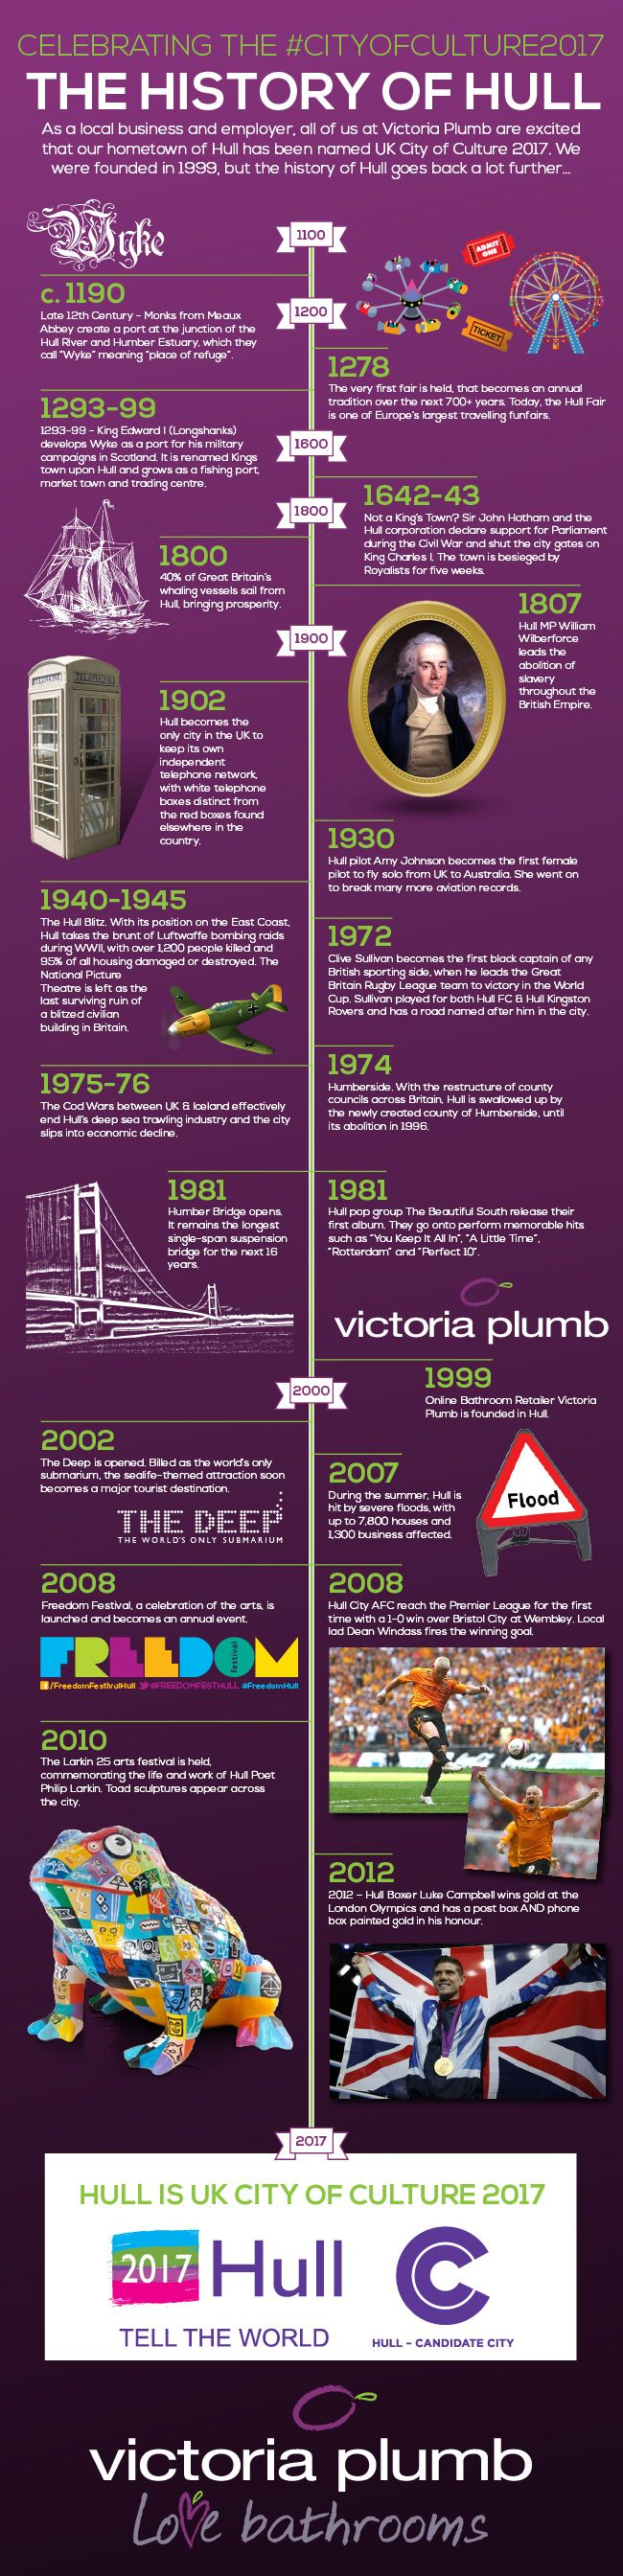 The History of Hull - City of Culture 2017 - Love Bathrooms: Victoria Plumb Bathroom Inspiration